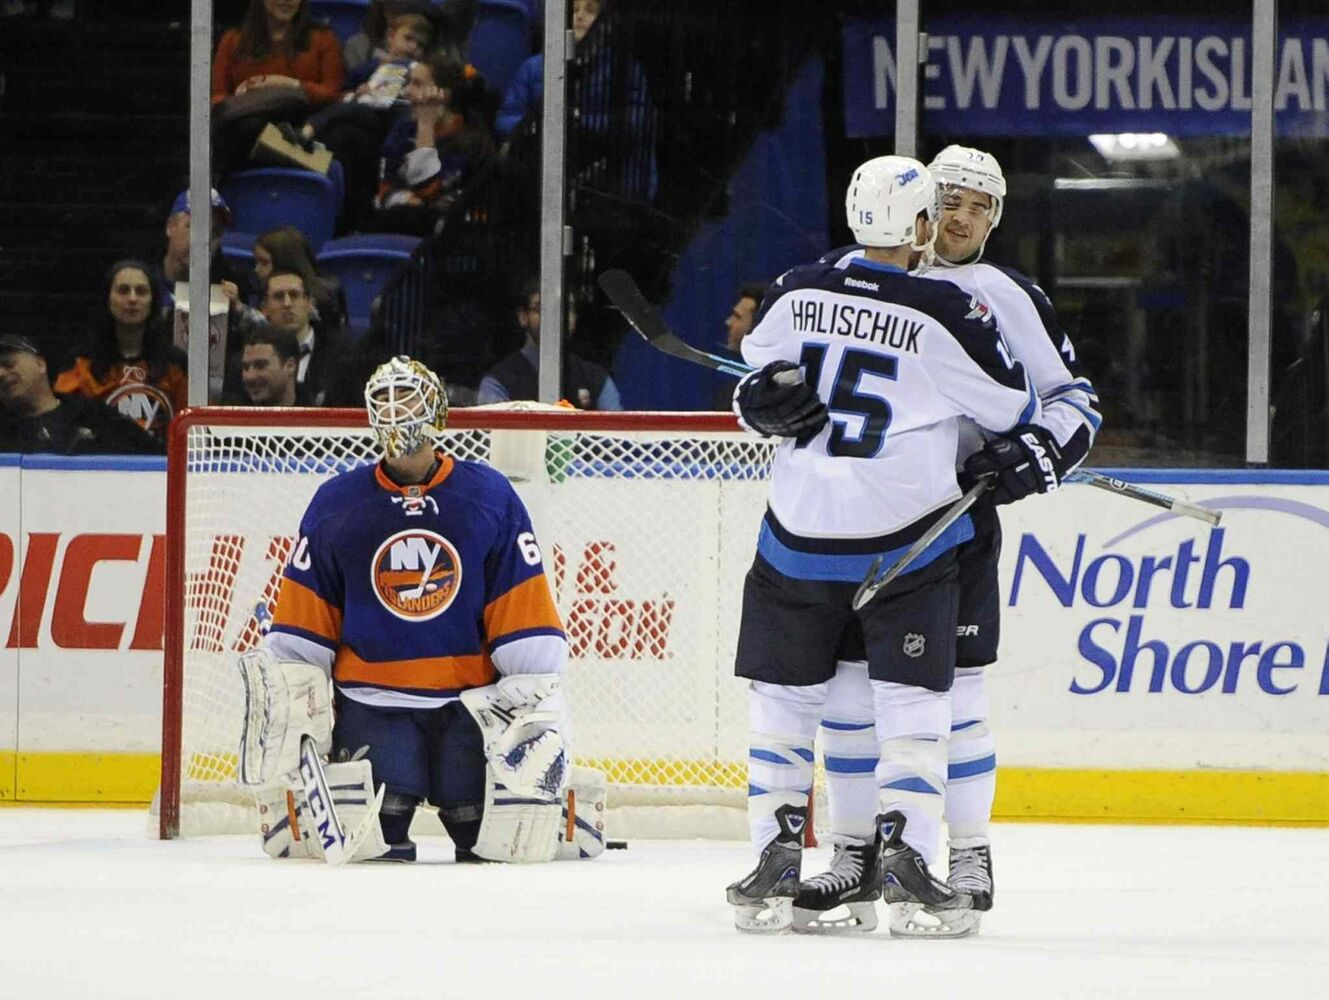 New York Islanders goalie Kevin Poulin (left) reacts as Winnipeg Jets forward Devin Setoguchi (right) celebrates his goal with Matt Halischuk in the second period.